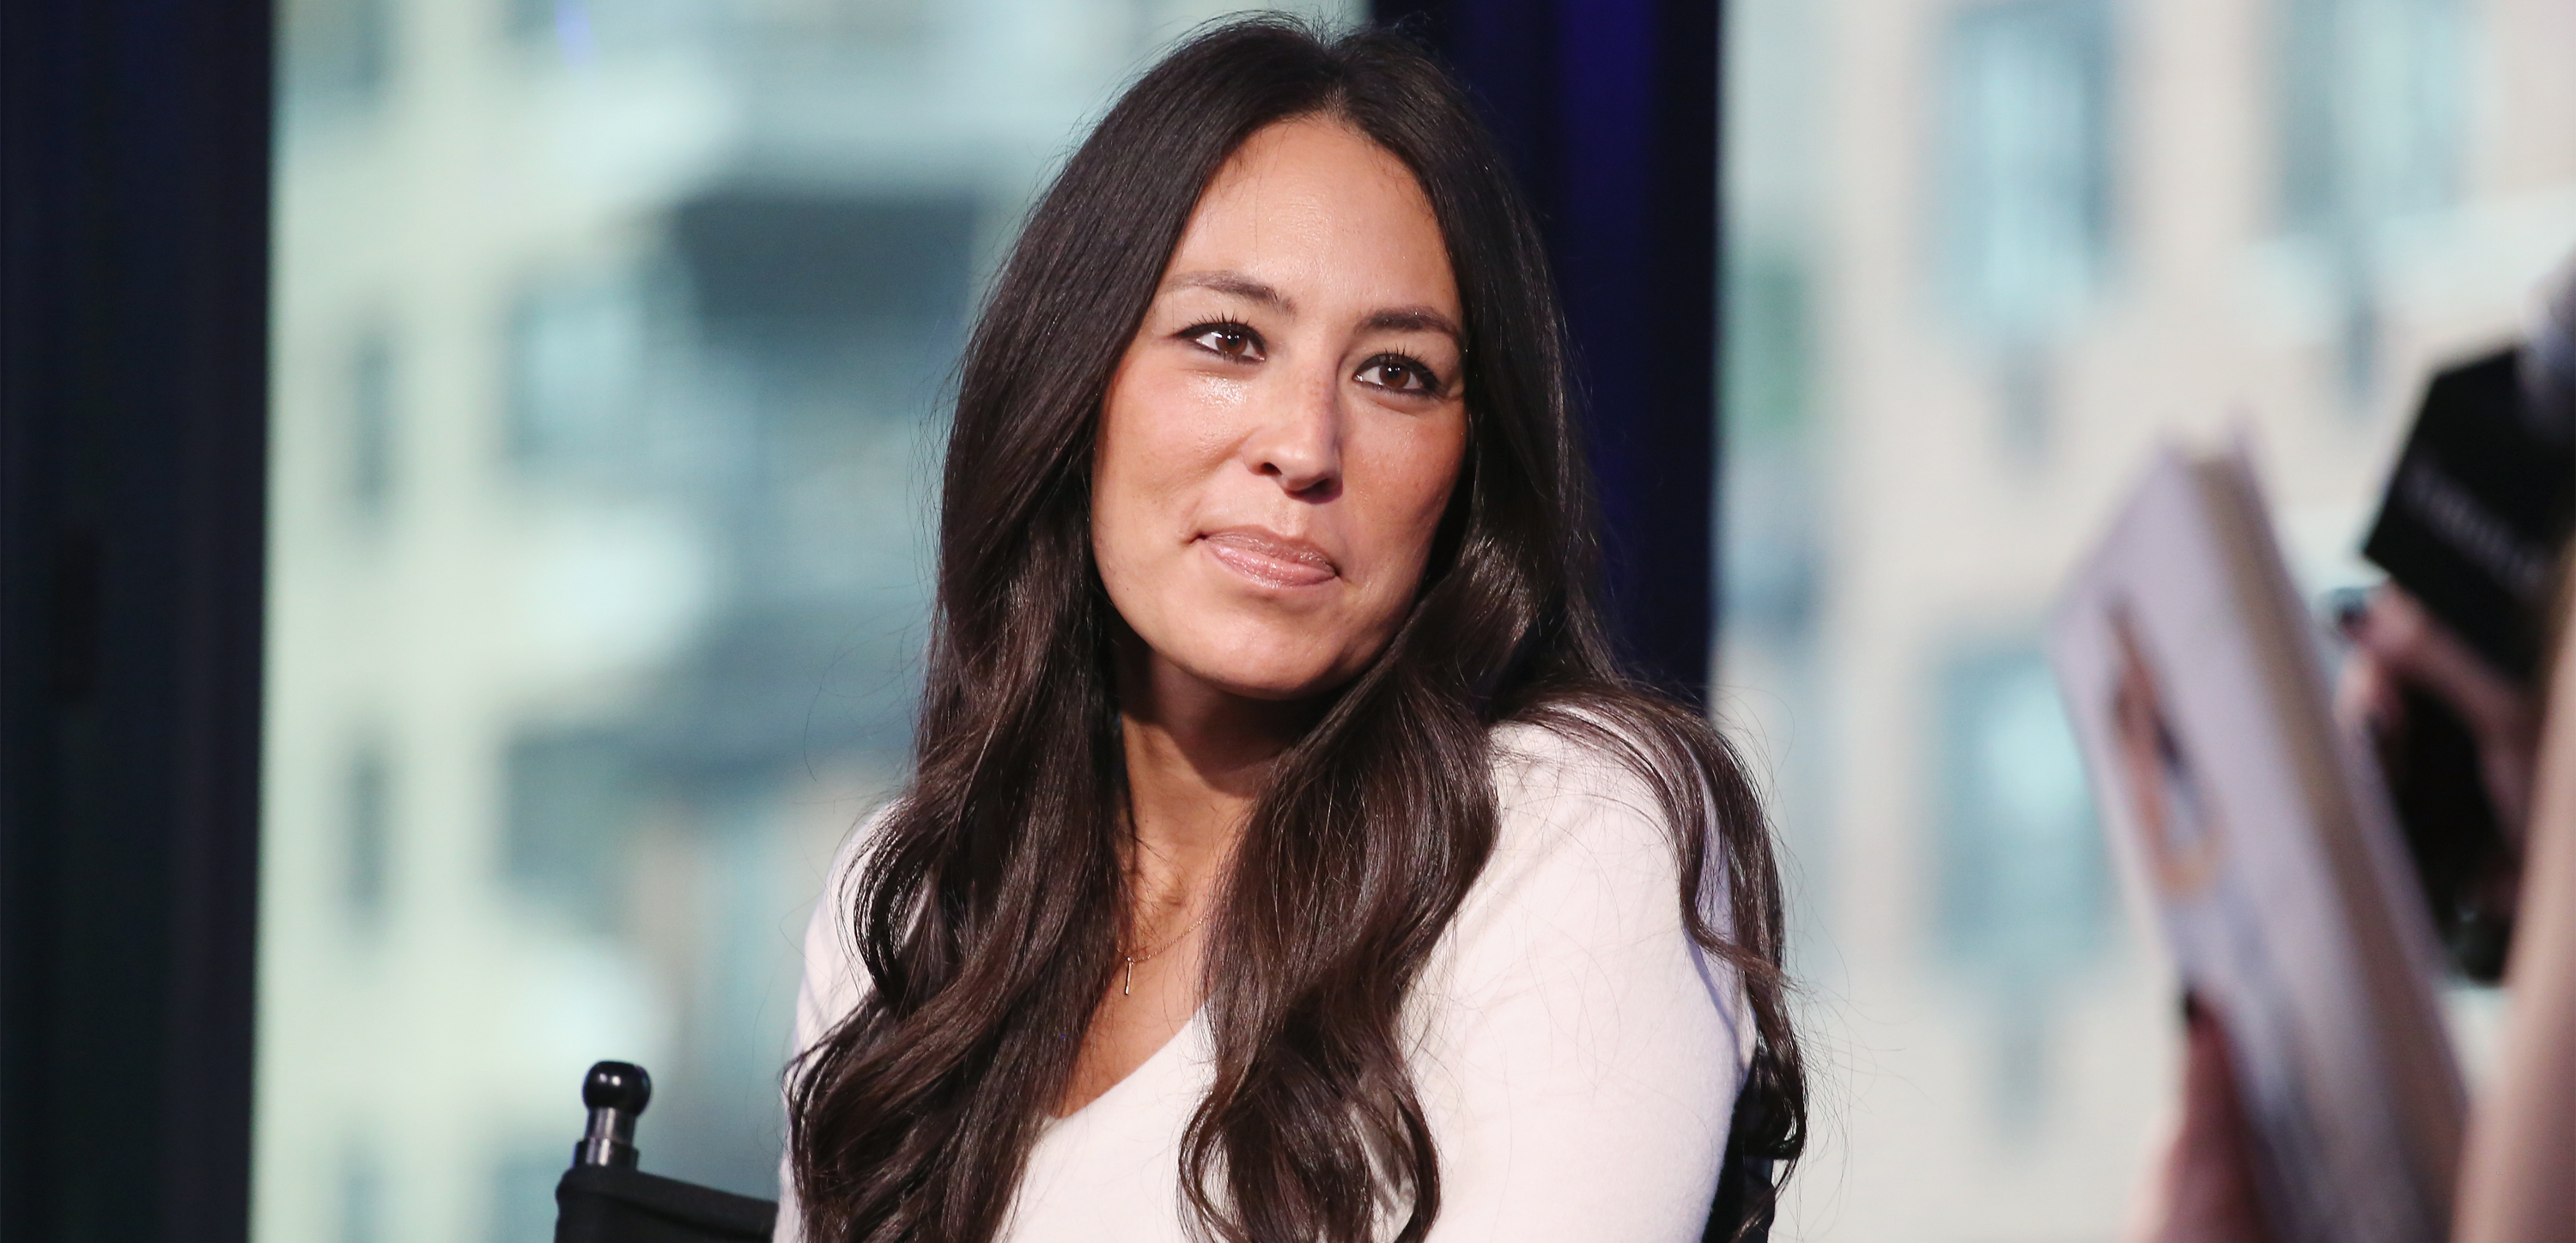 Ex-HGTV Star Joanna Gaines Writing Children's Book